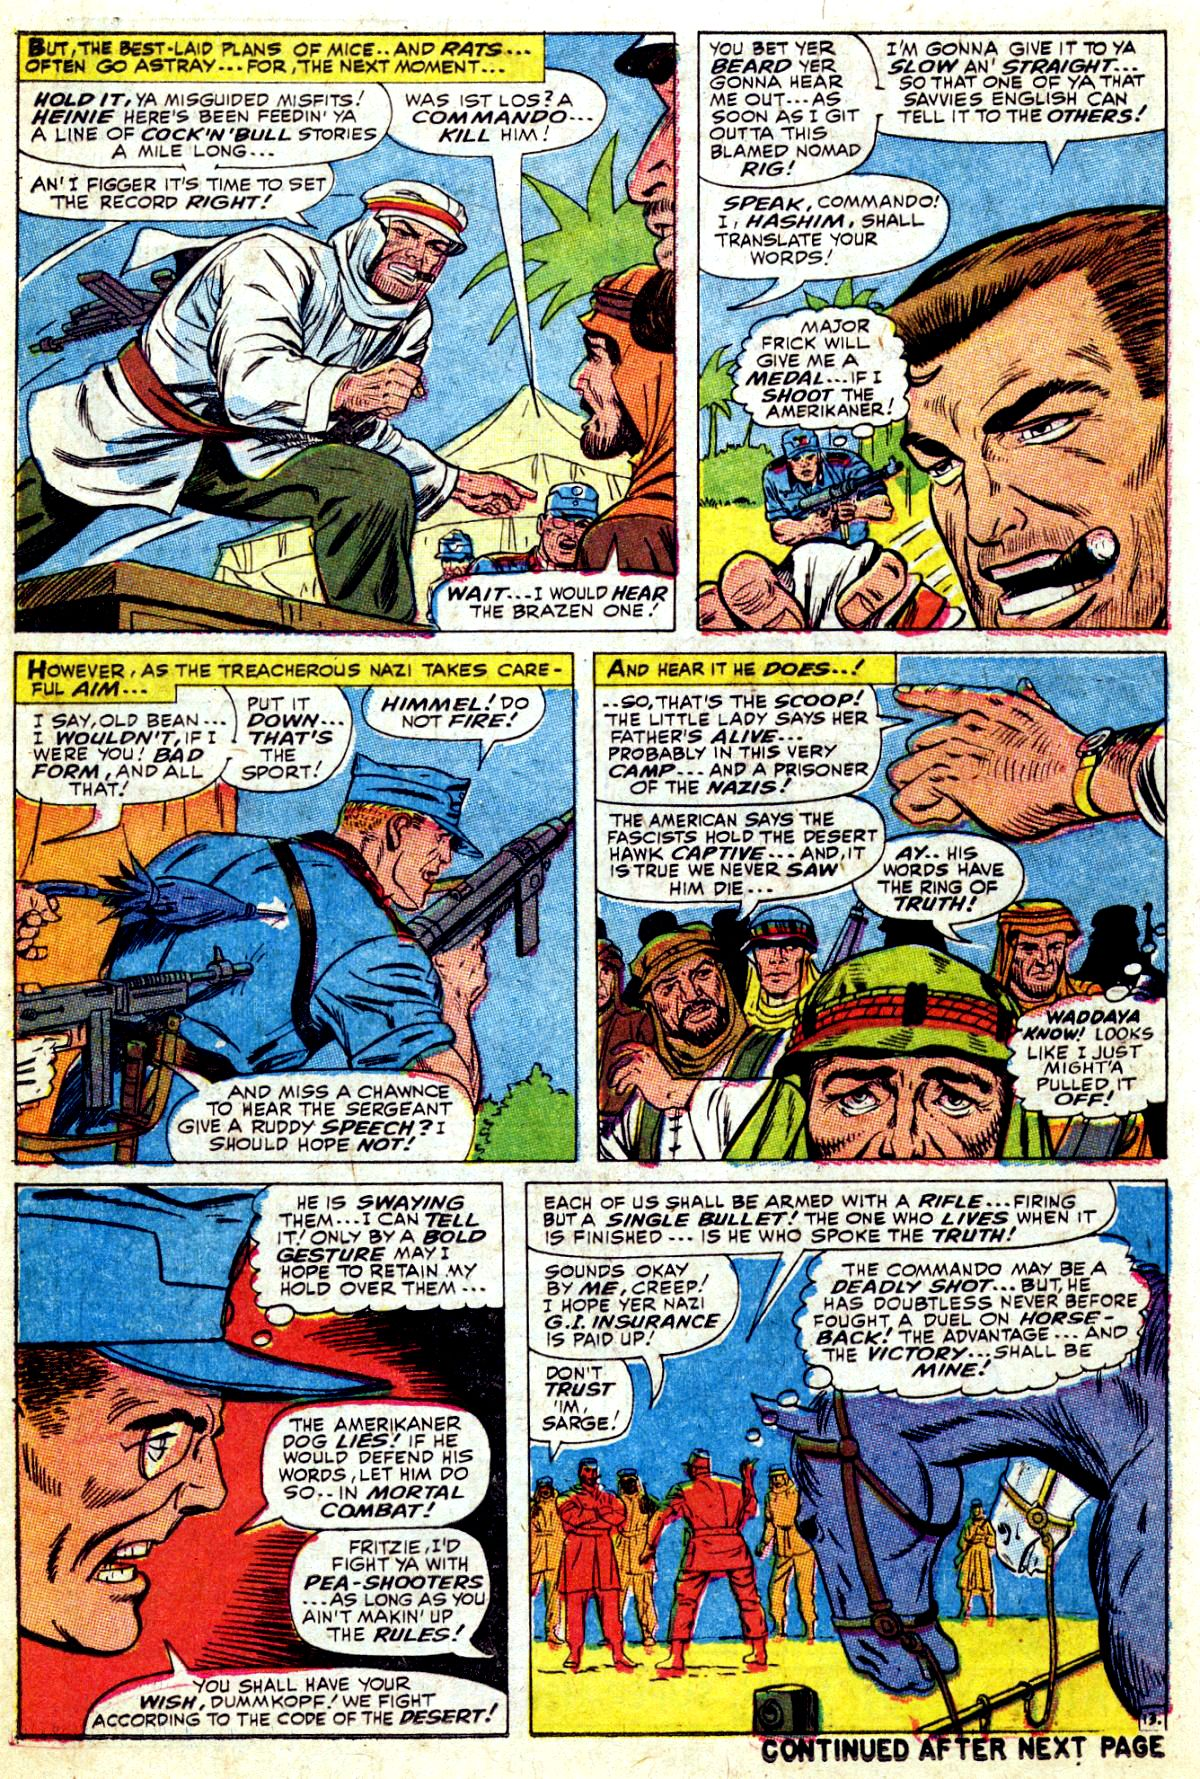 Read online Sgt. Fury comic -  Issue #37 - 18